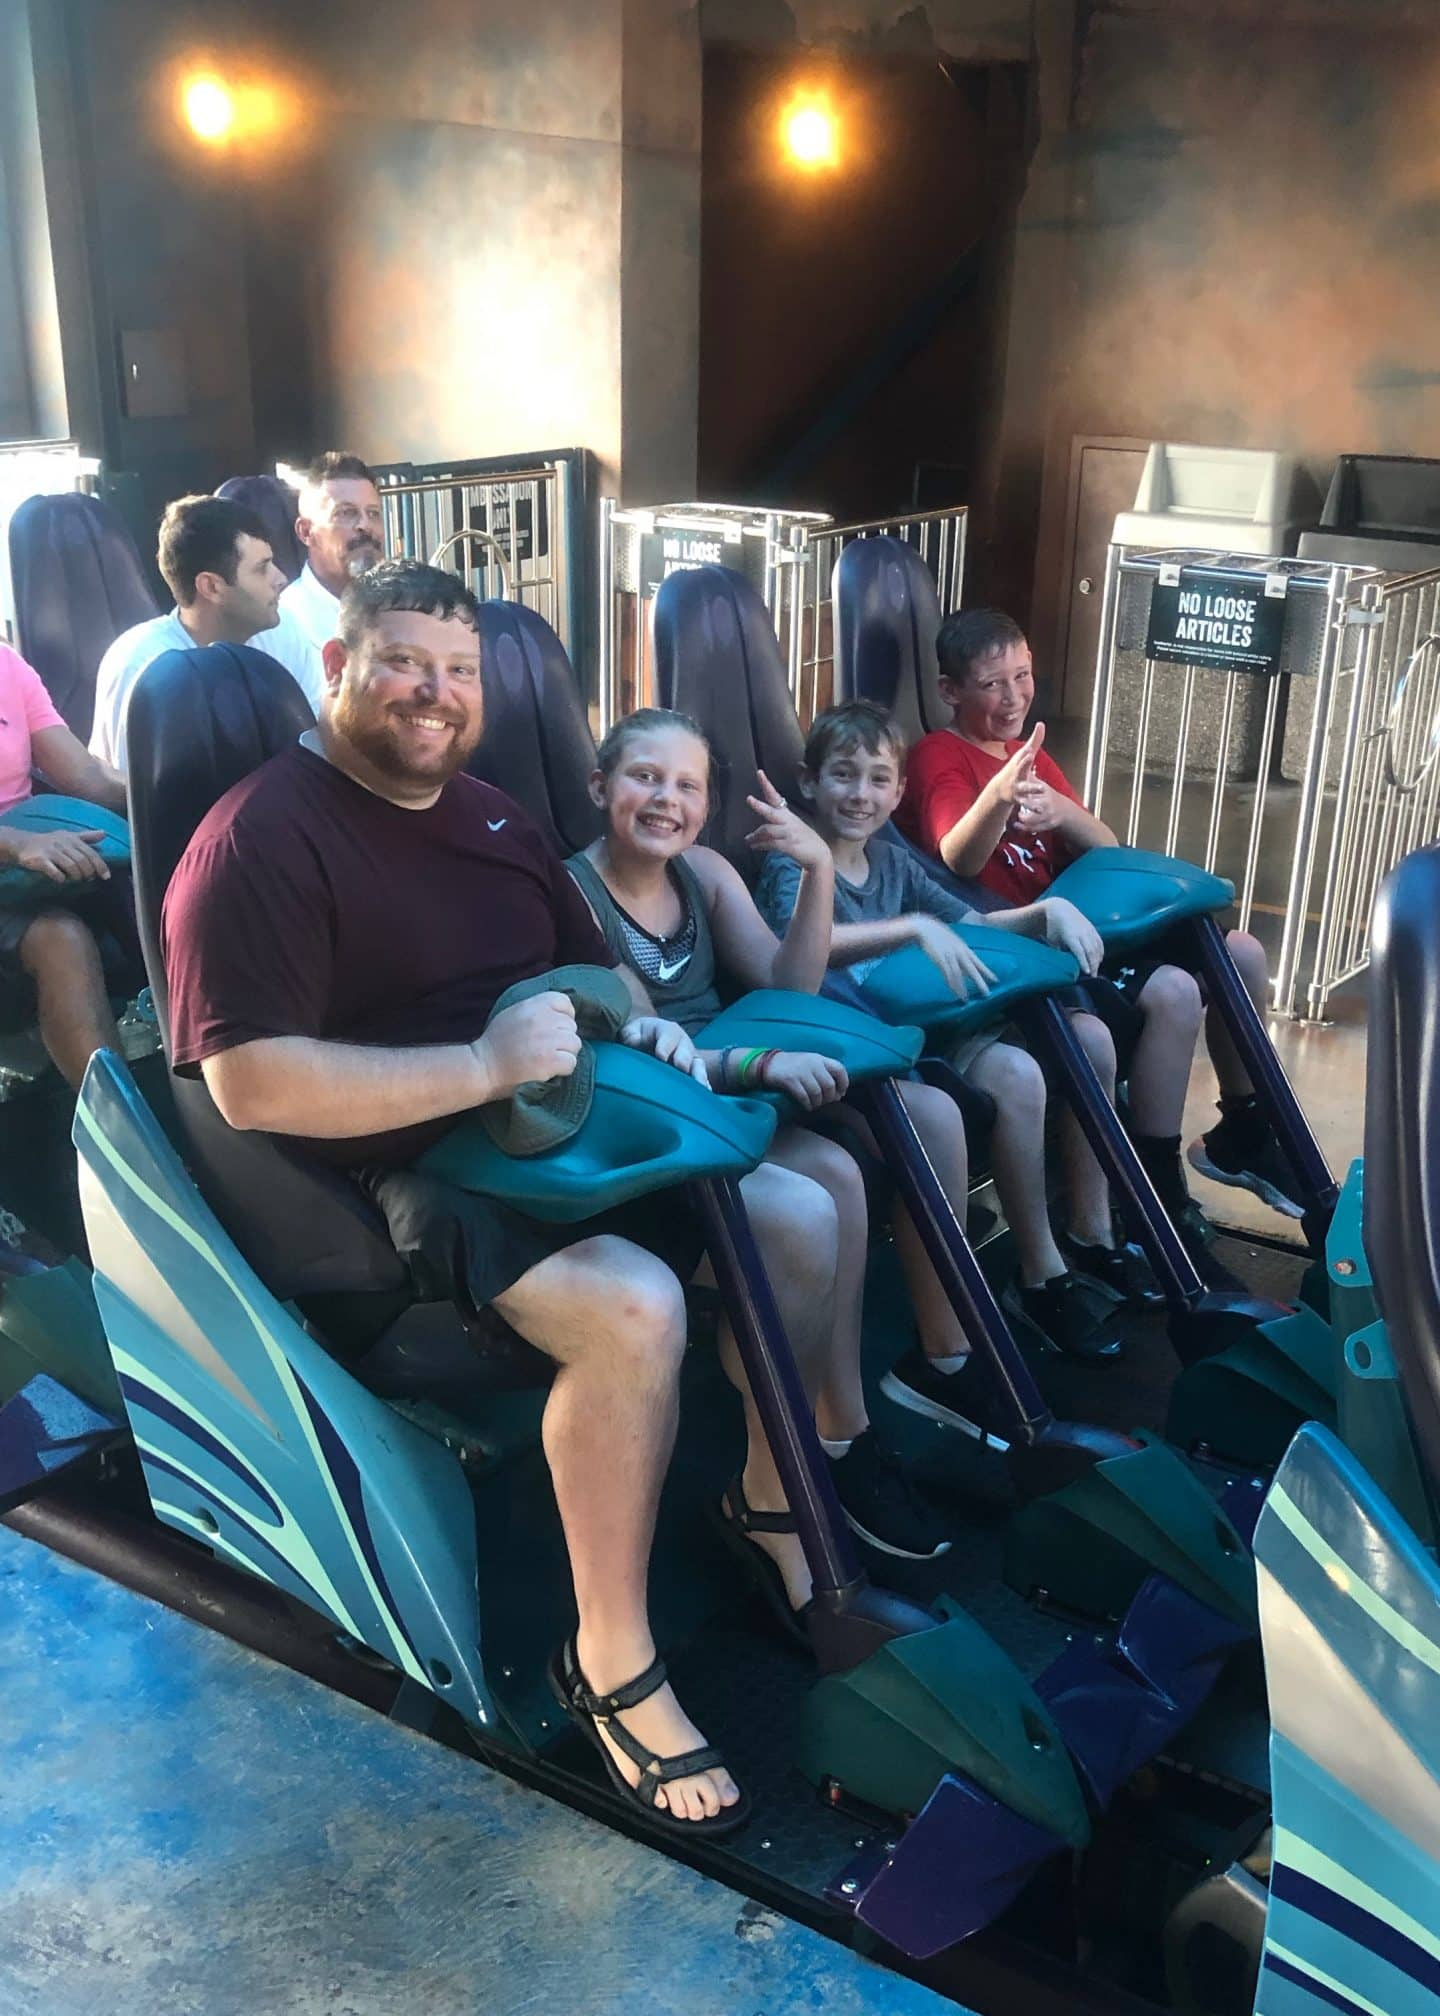 mako ride at sea world